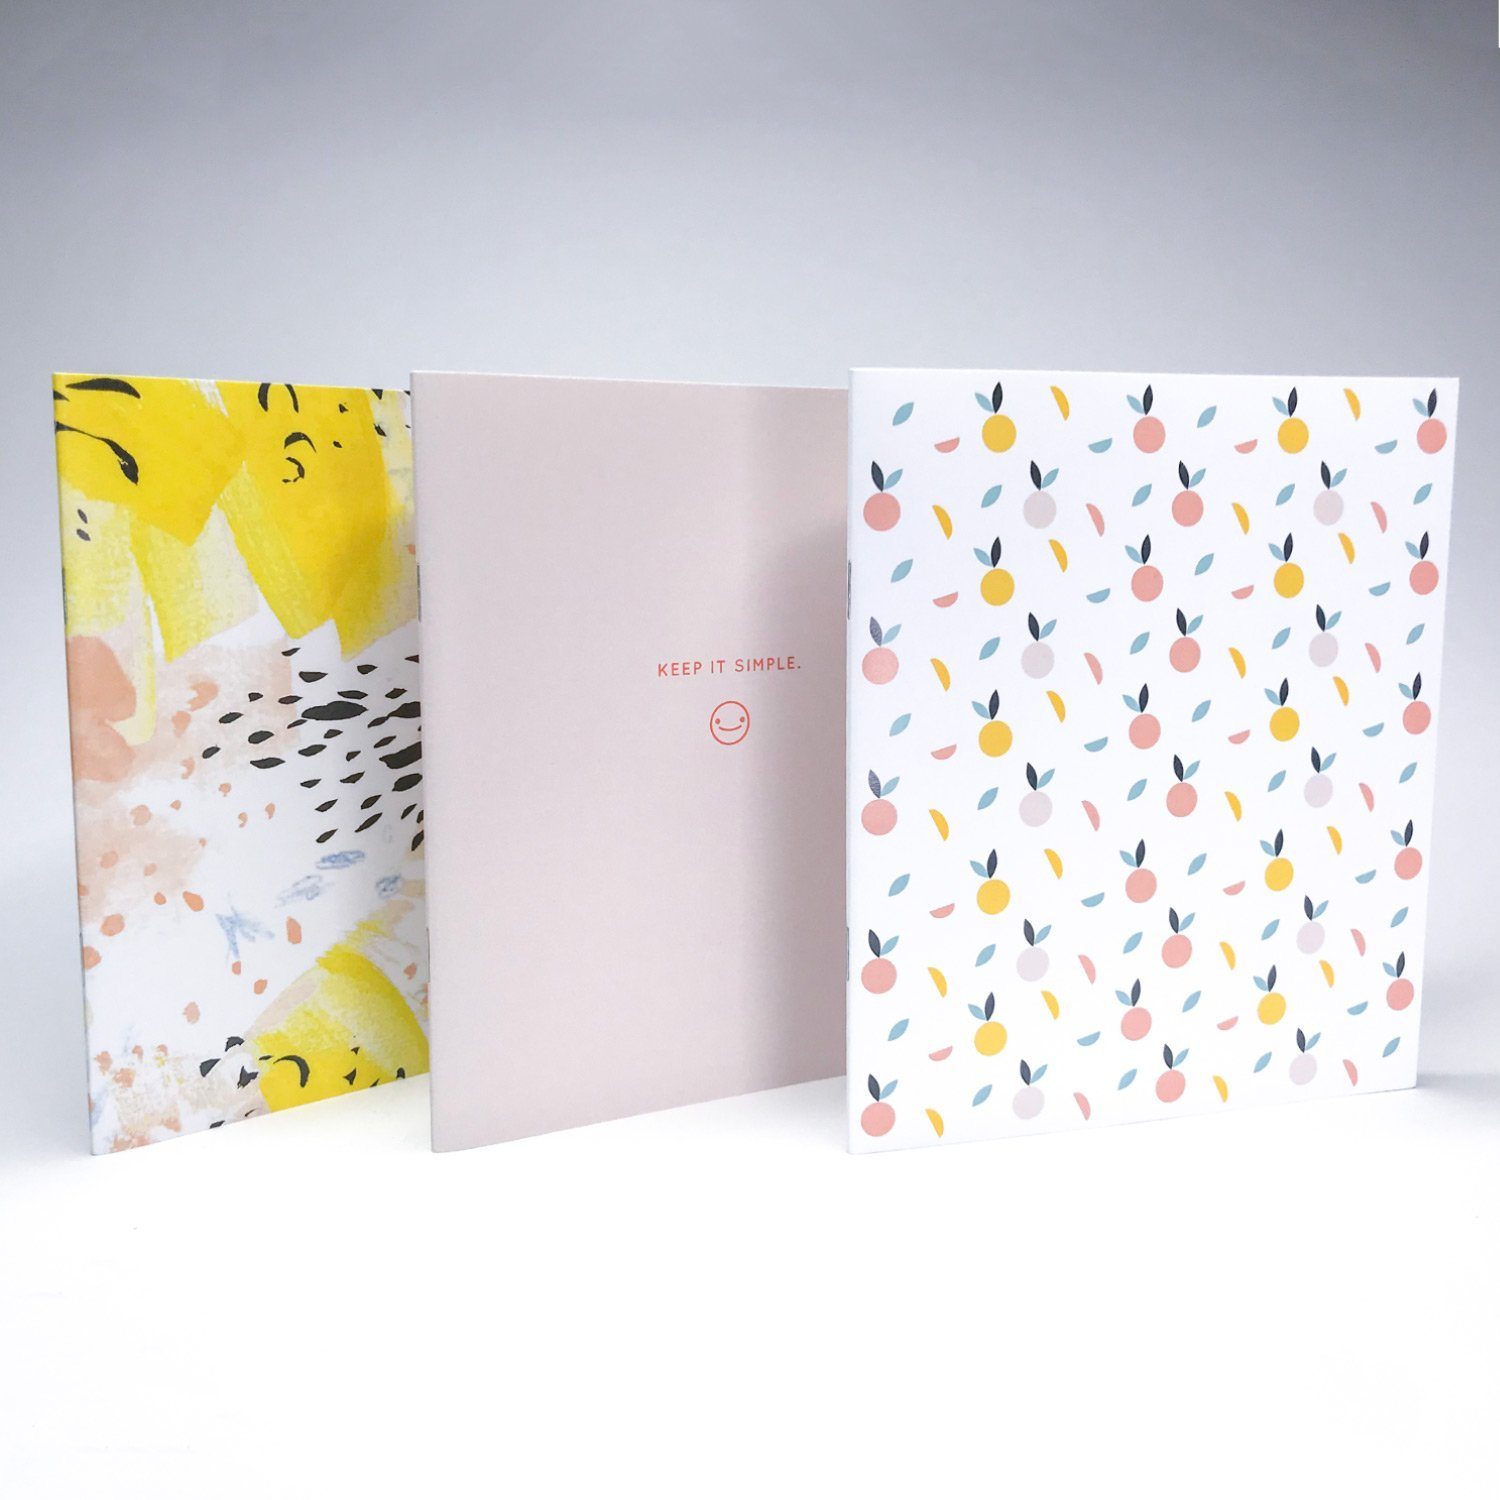 Writer's Pack, Set of 3 notebooks, blank inside, Peaches, Cute, Colourful and Pack of 10 Gold Foil Pencils, Fully Designed and Printed in Canada Writer's Pack